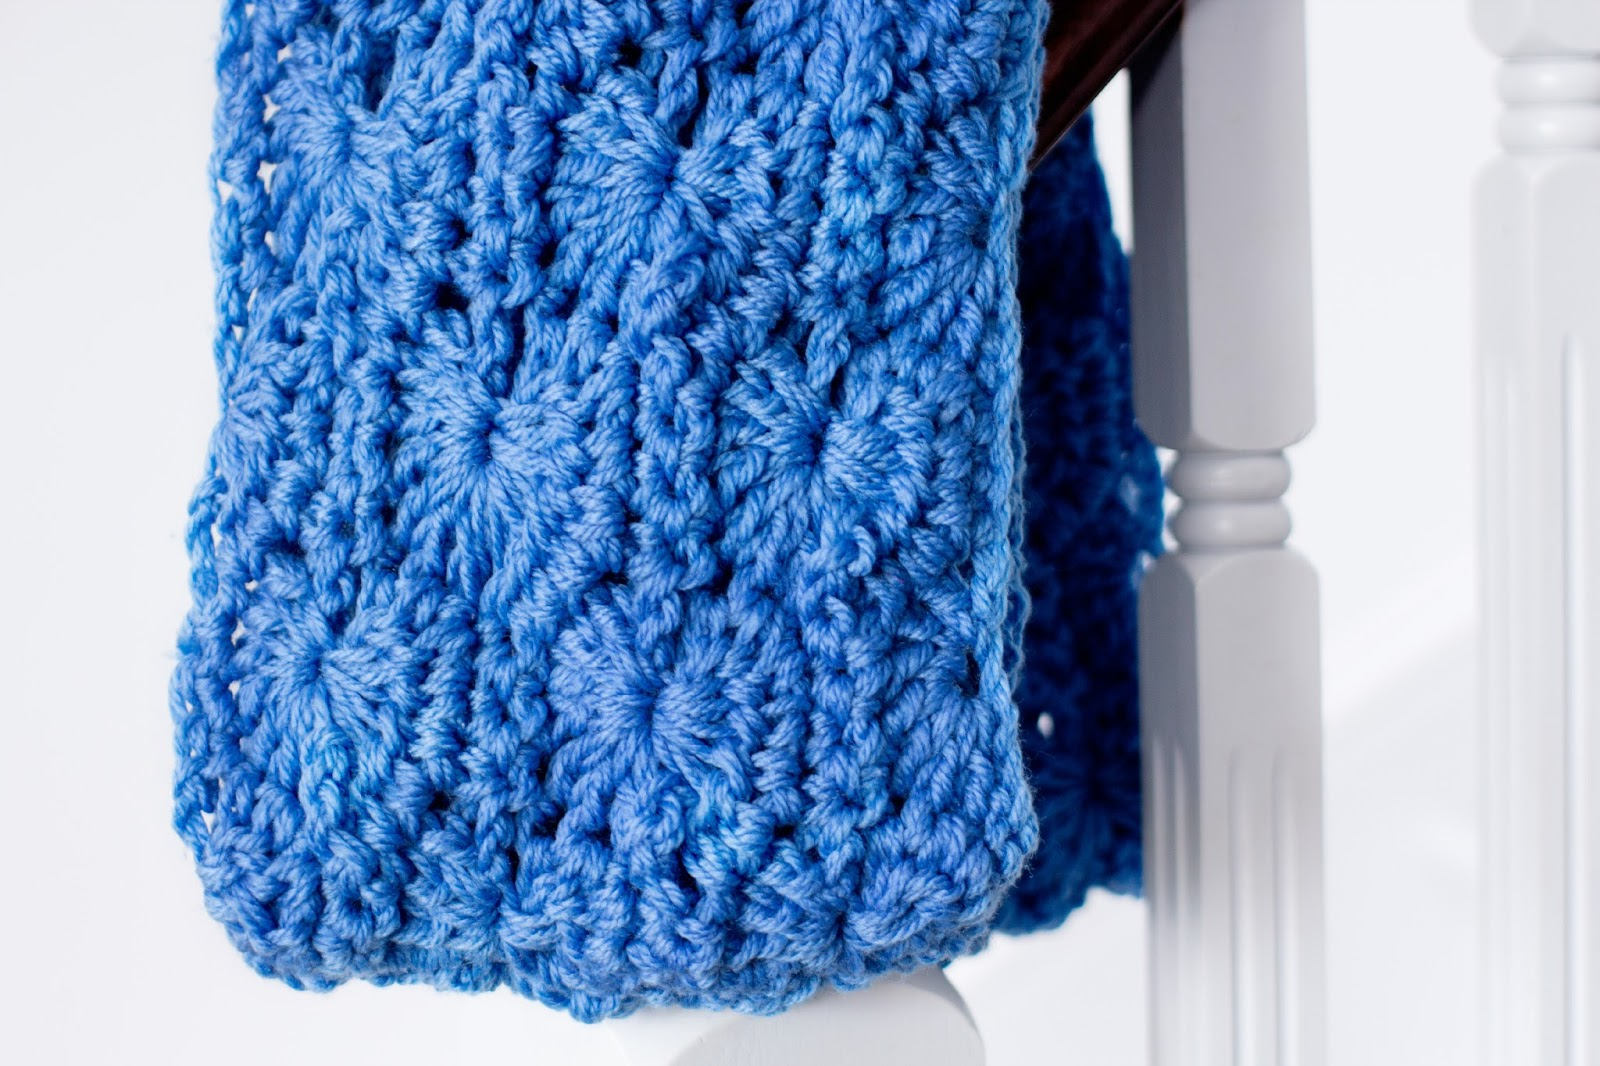 Crochet Stitches Patterns : ... Craft, Crochet, Create: A Unique Gift ~ Infinity Scarf Crochet Pattern